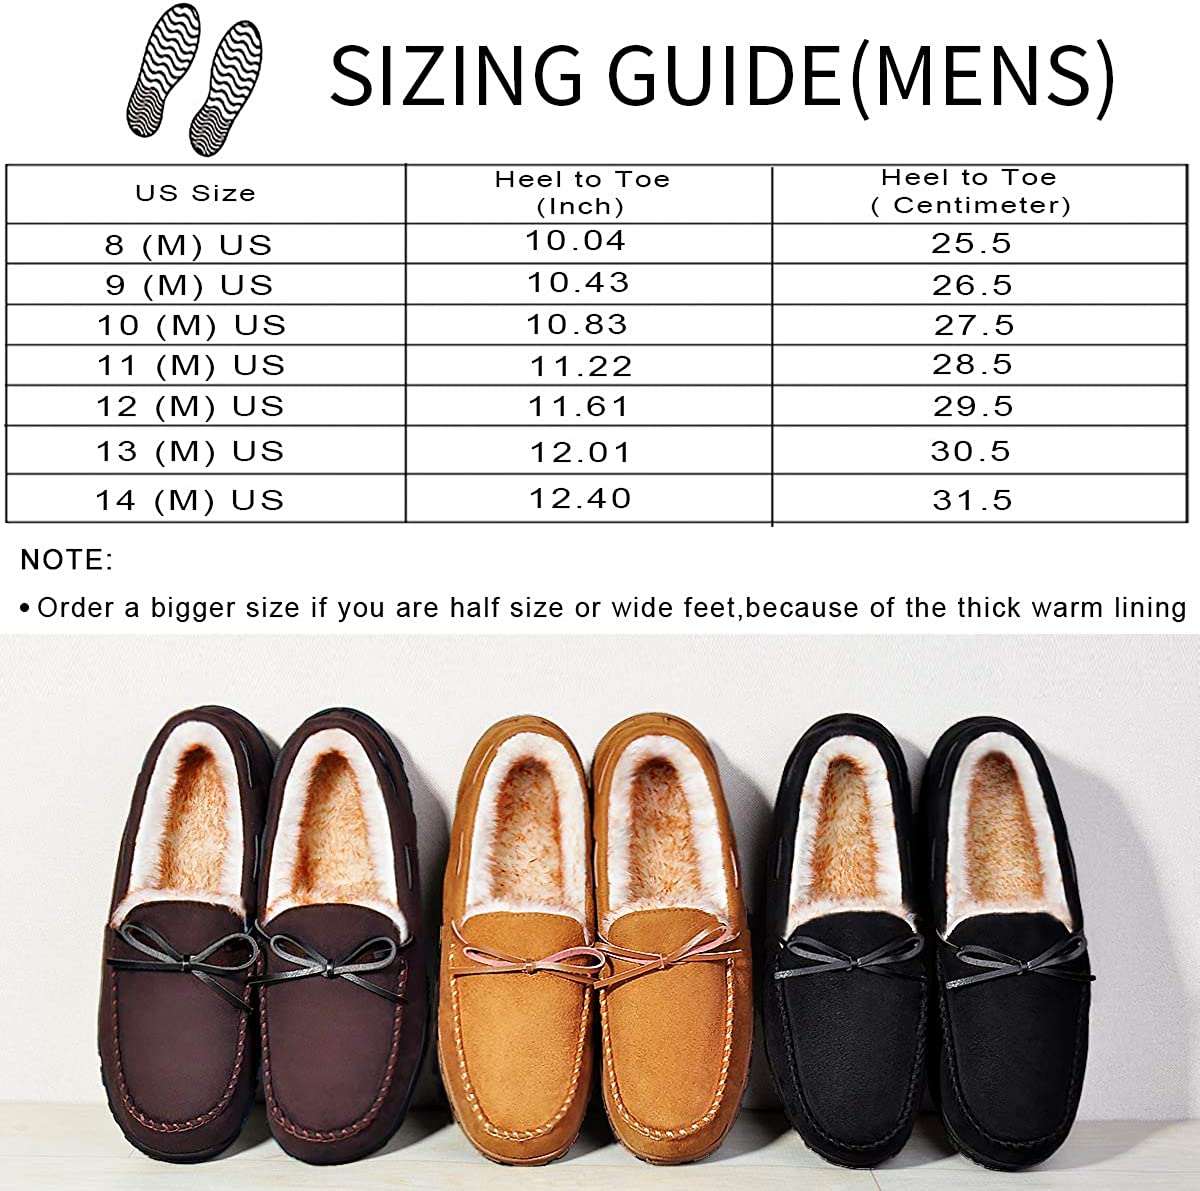 | MIXIN Mens Slippers Moccasins Slippers for Men Warm House Slip on Flats Shoes with Cozy Memory Foam for Men Indoor | Slippers